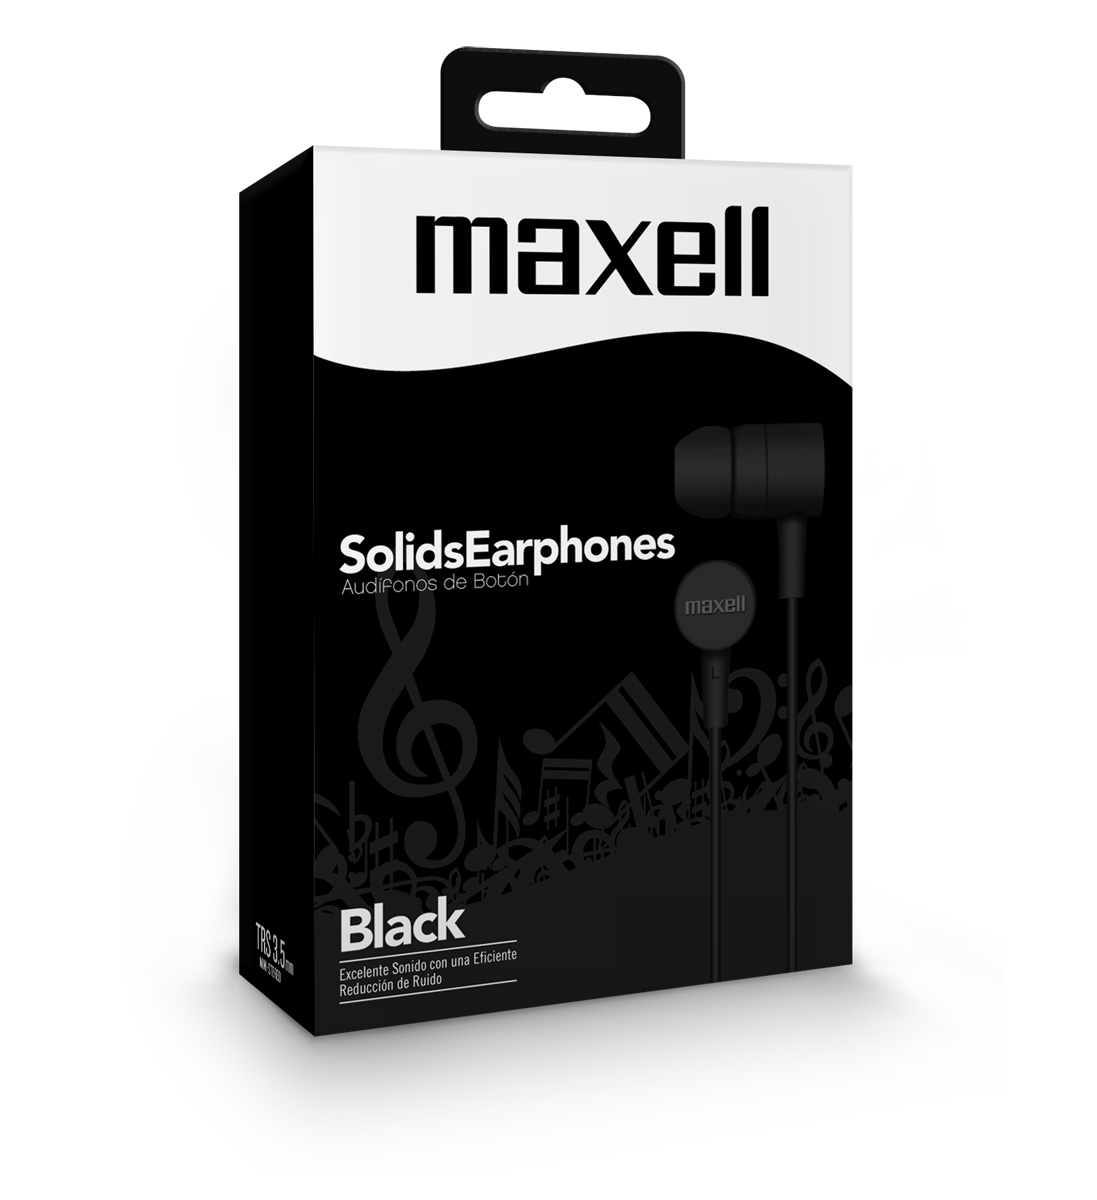 MAXELL SOLIDS EARPHONES